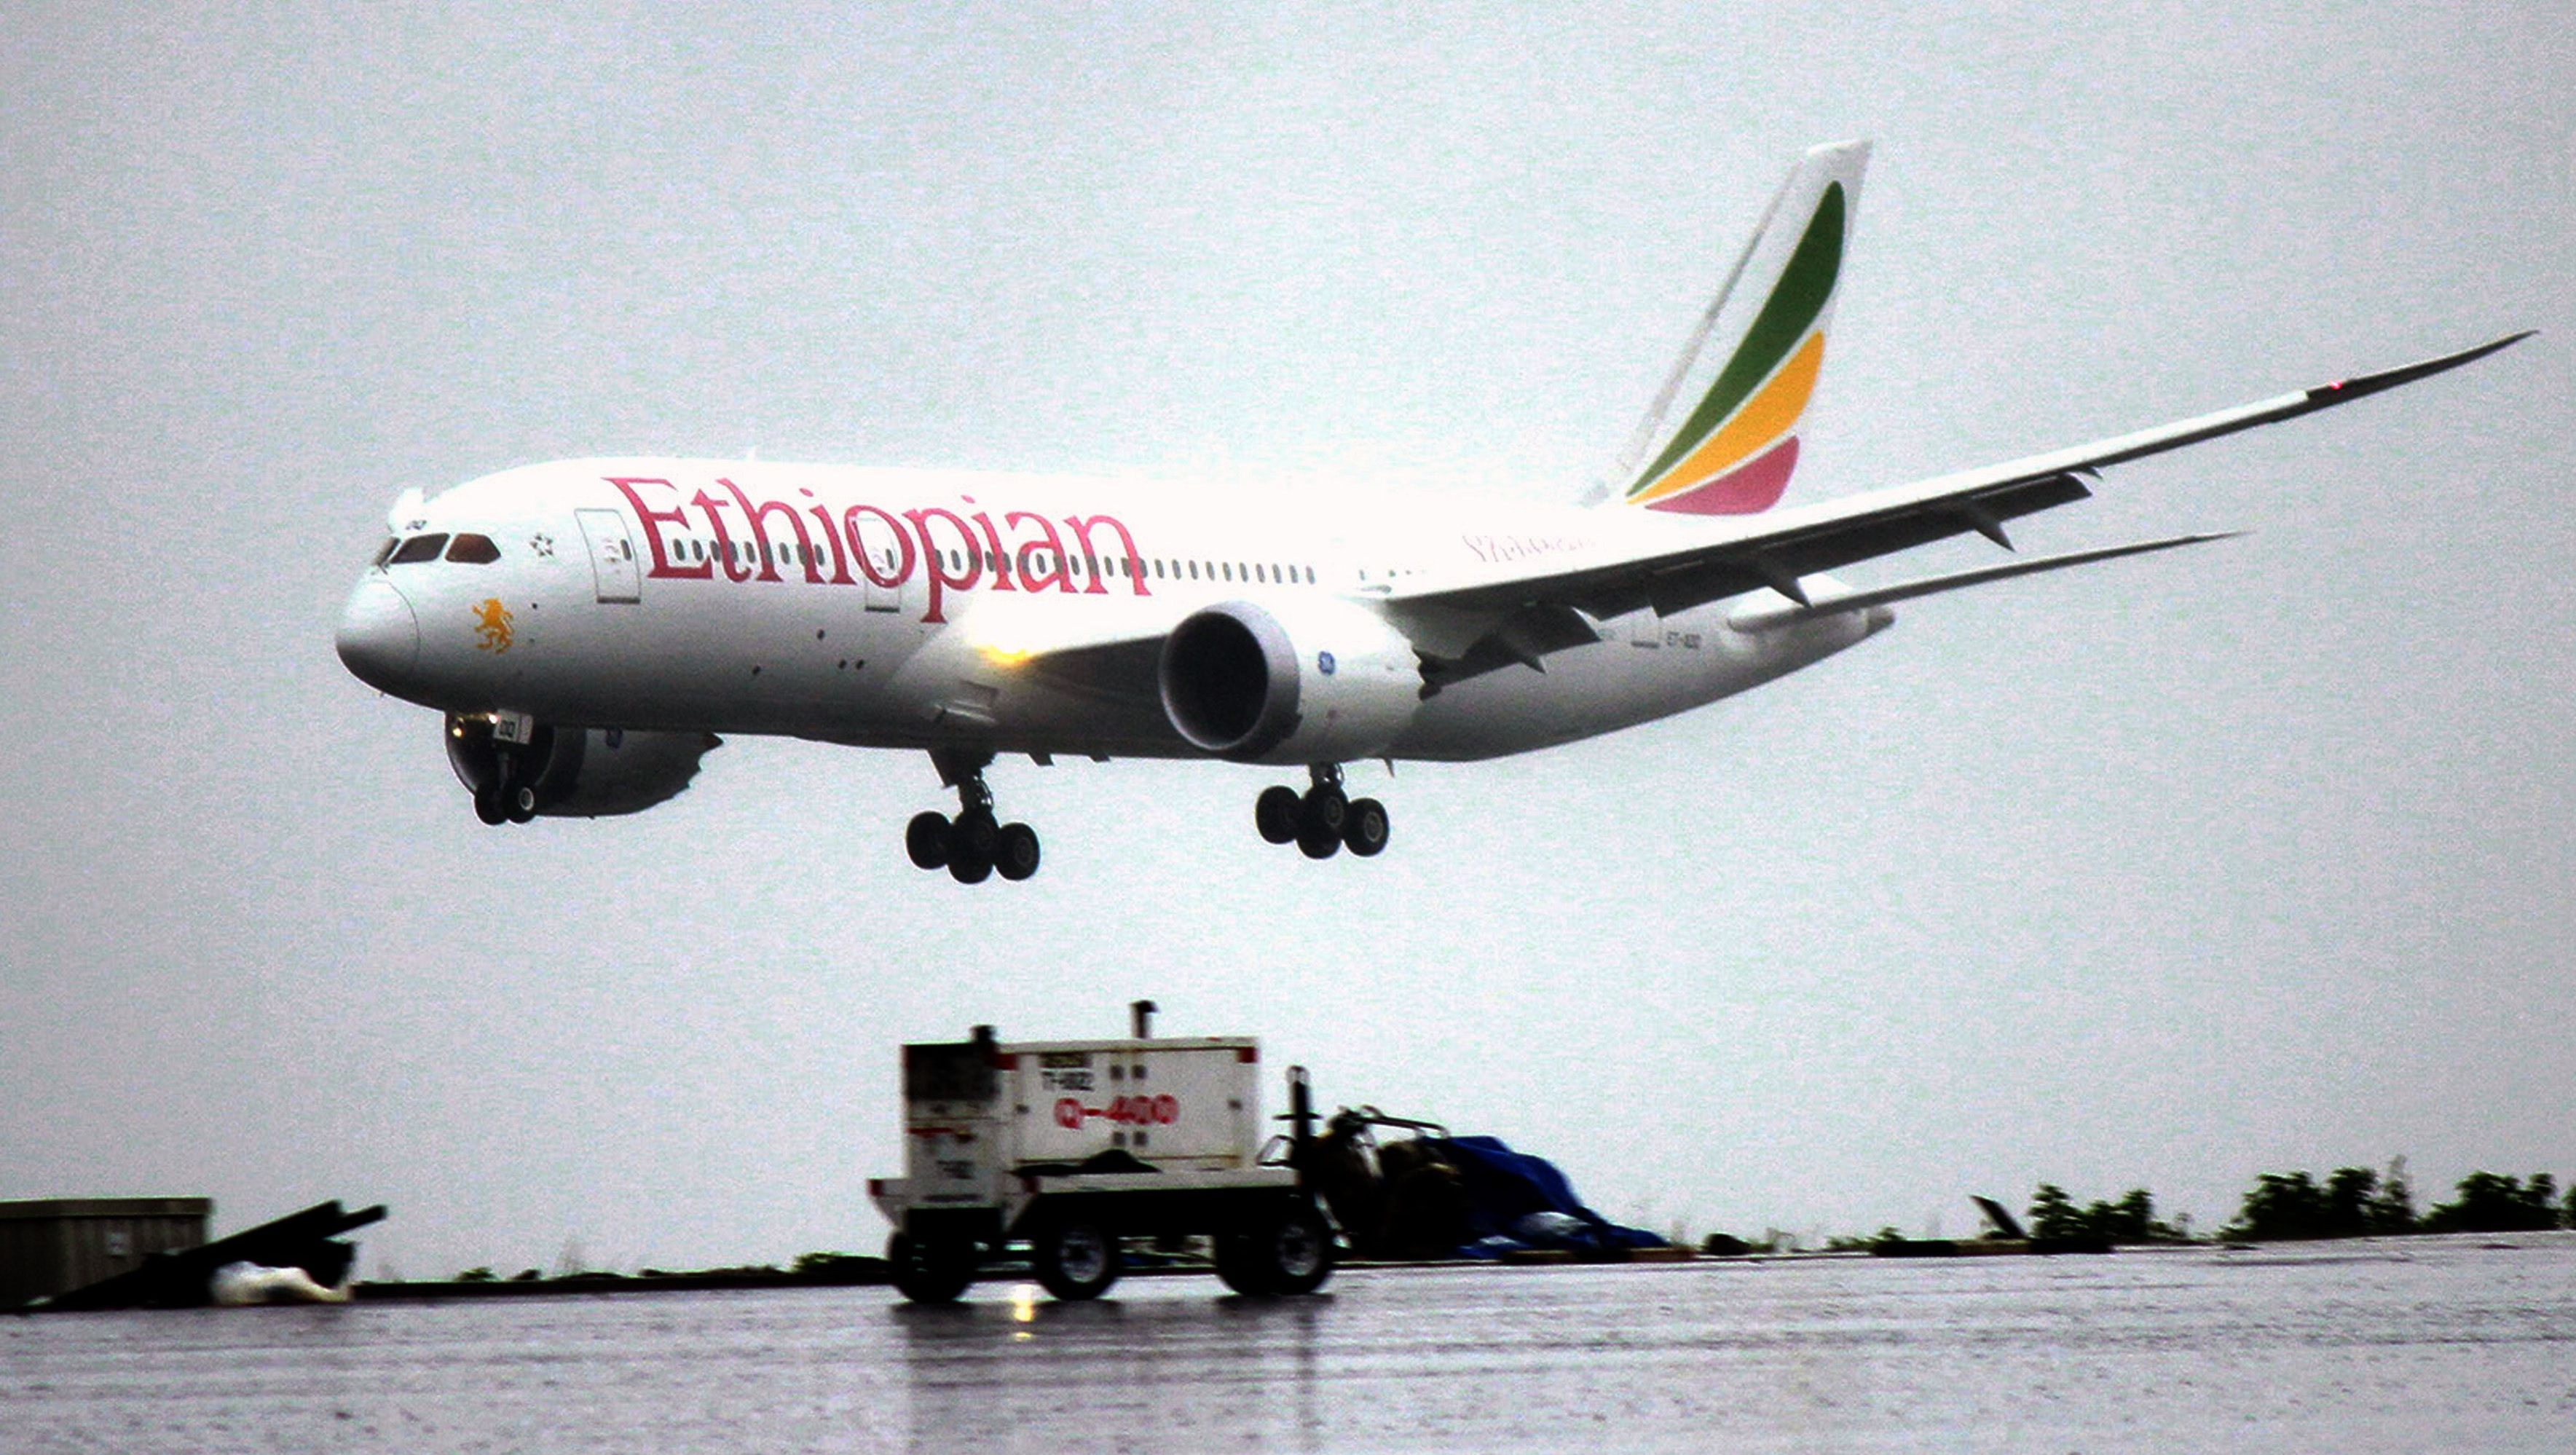 Ethiopian Airlines to buy more aircraft and set up more Africa hubs